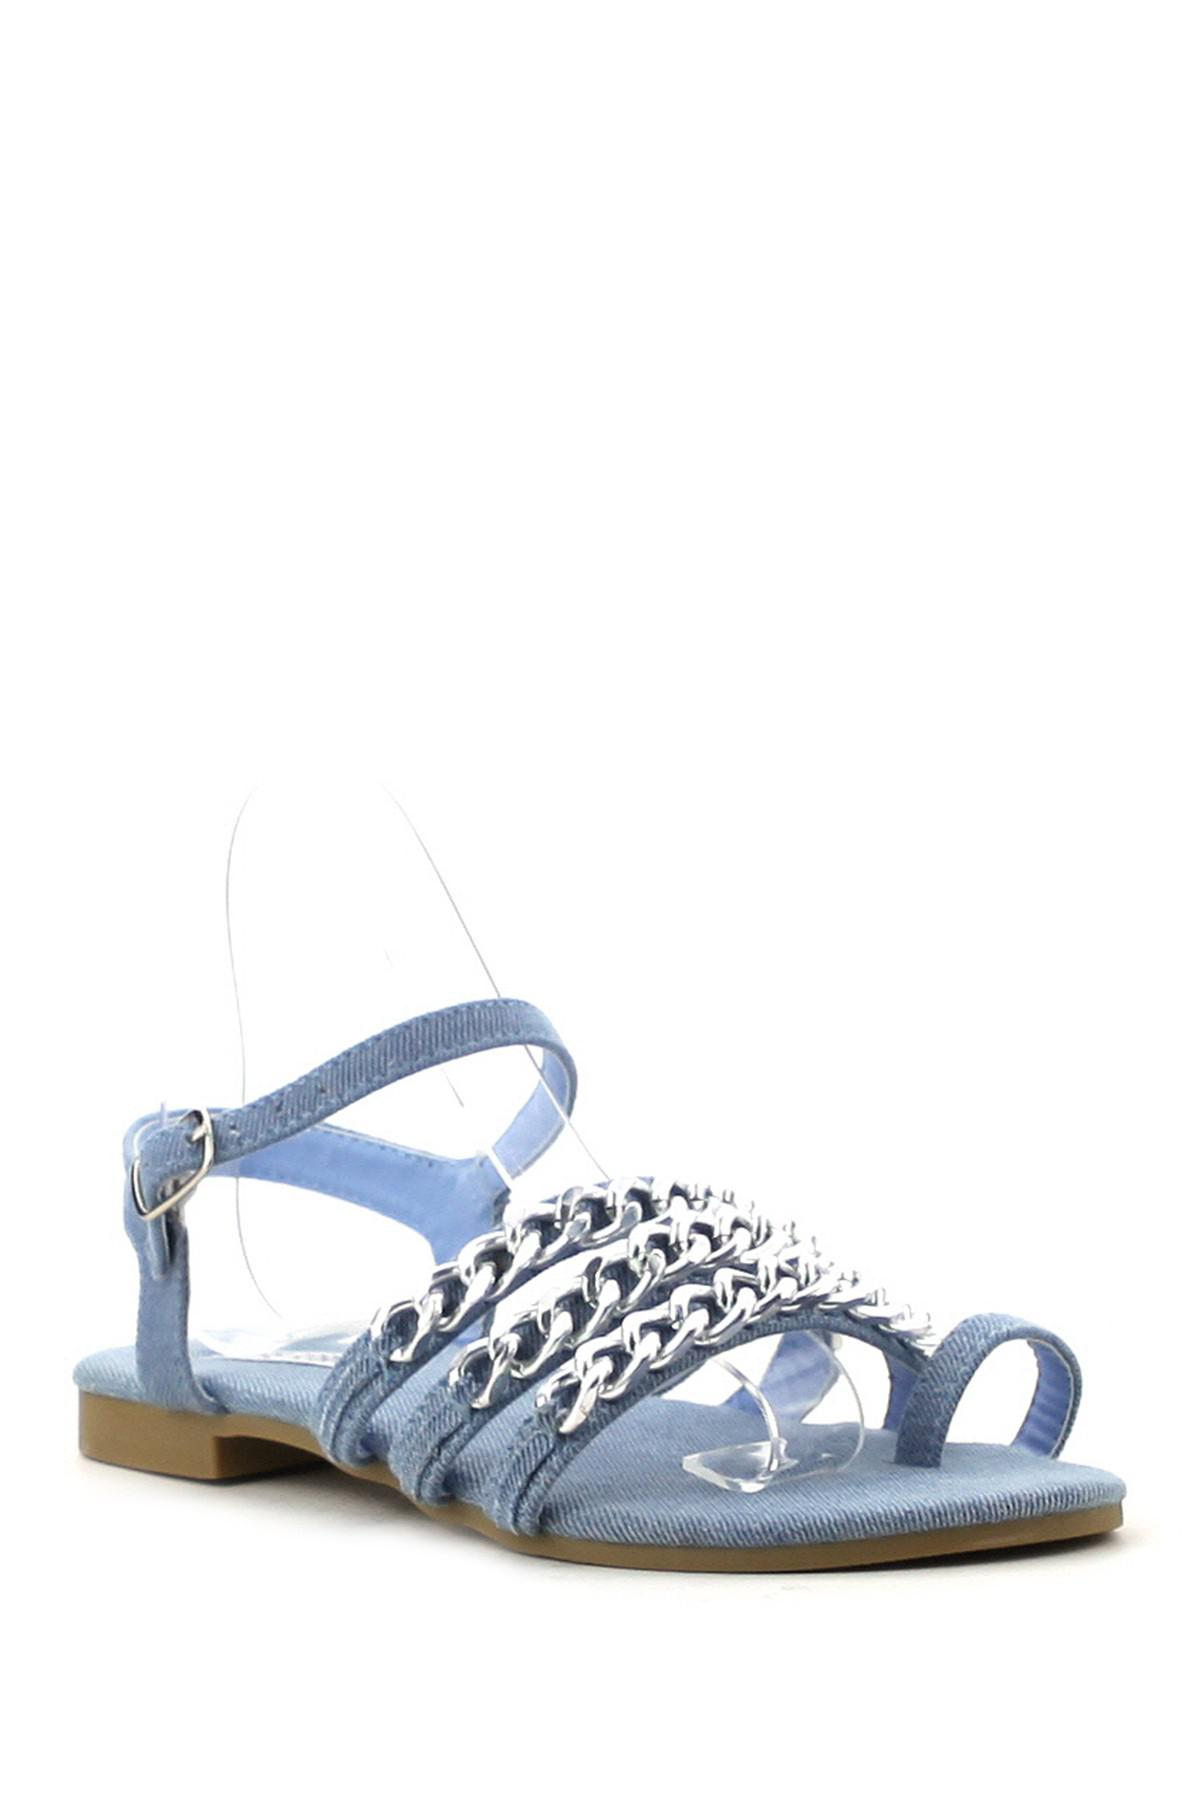 Cape Robbin Cash Multi Chain Sandal WmmonV